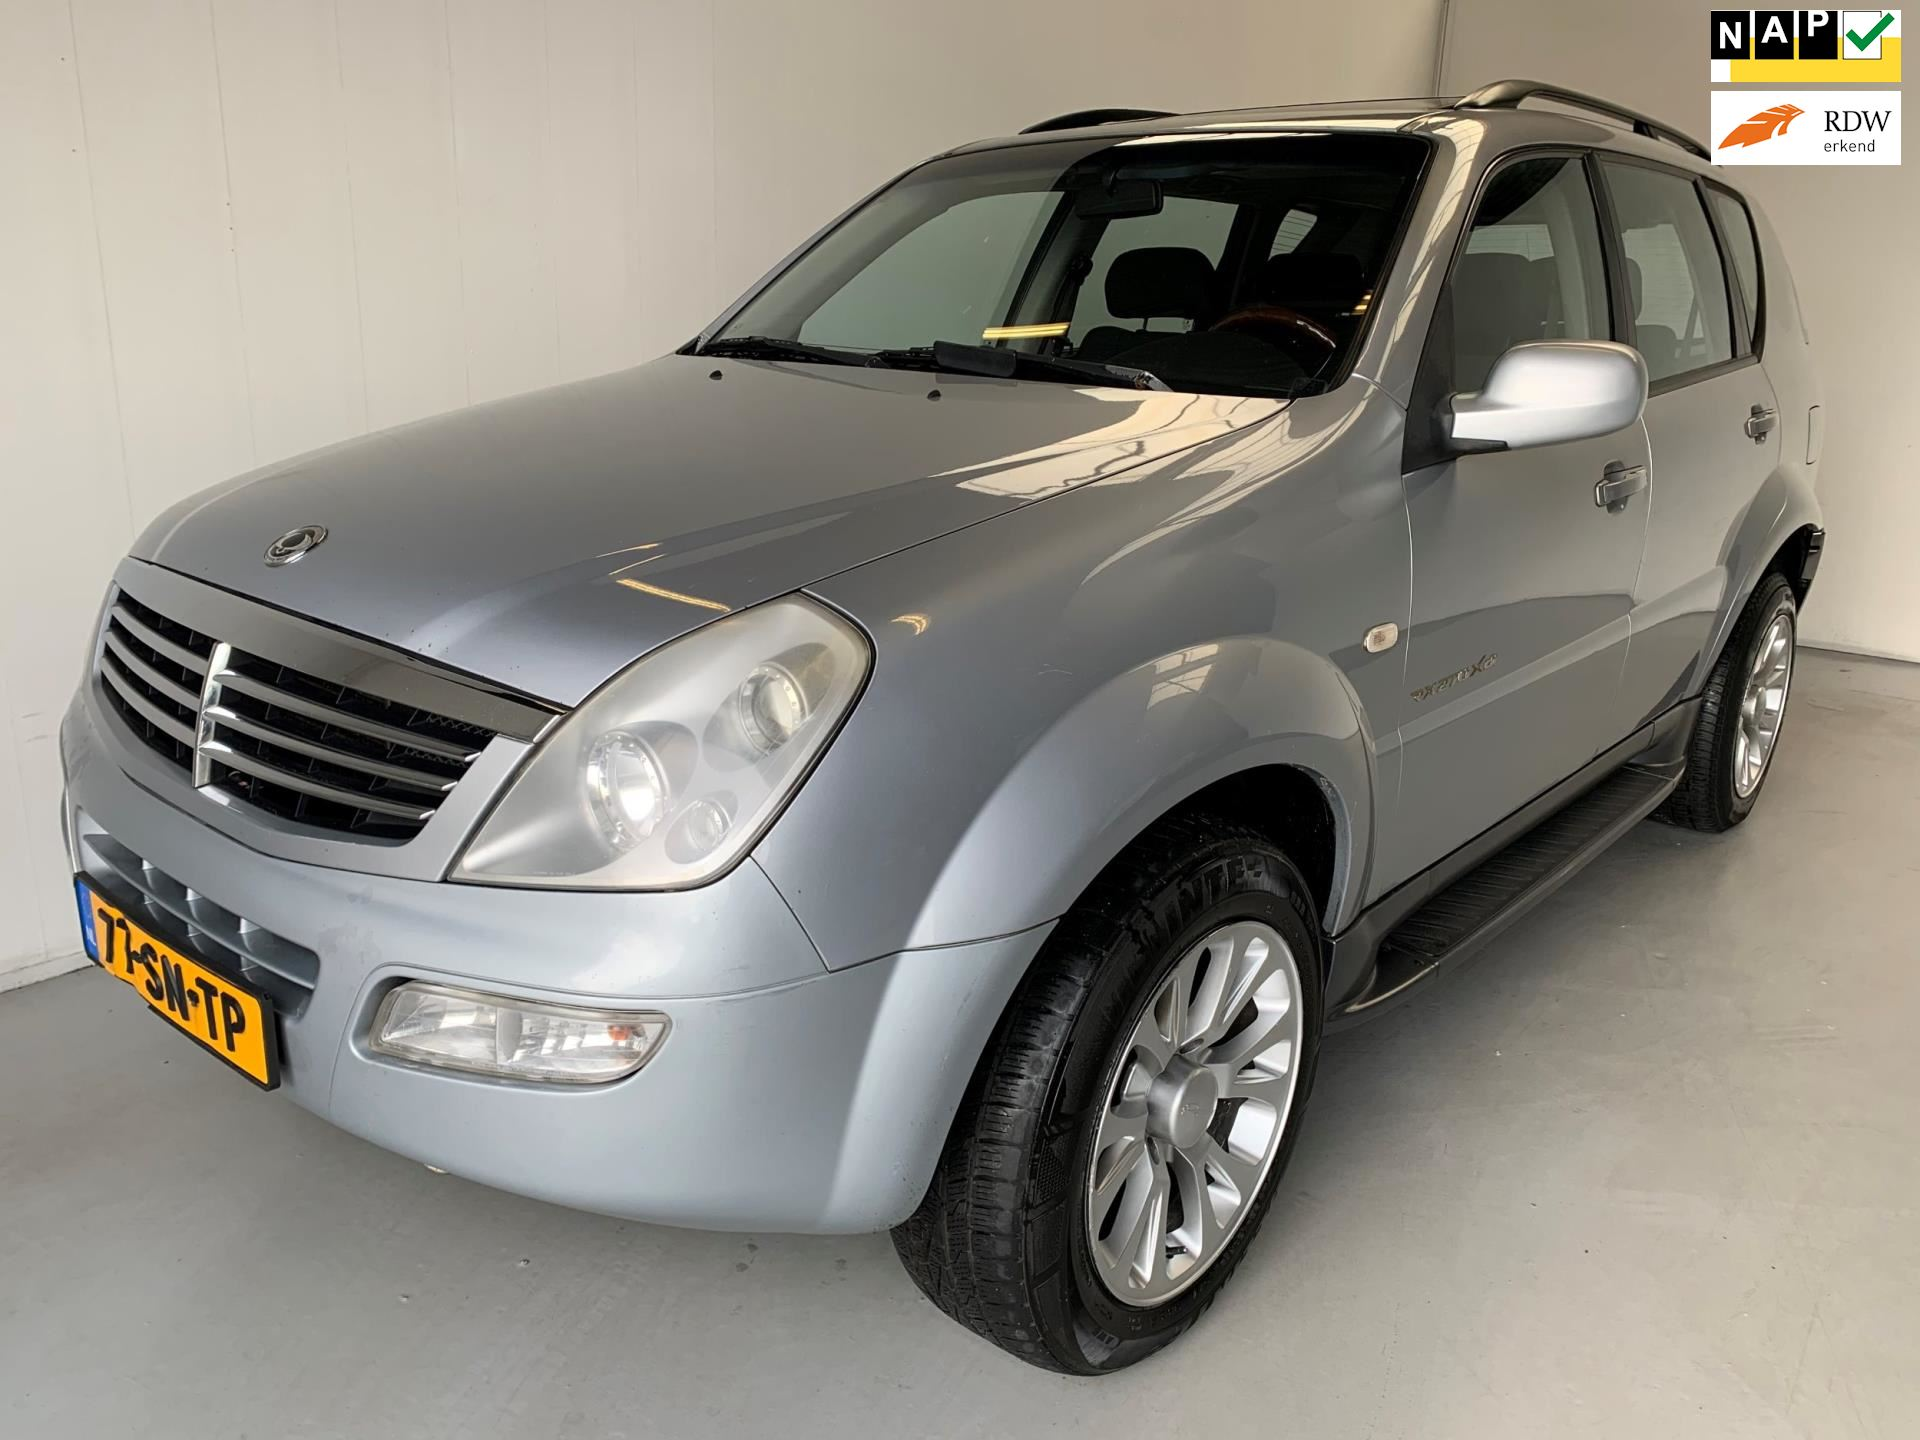 SsangYong Rexton occasion - Autobedrijf Leeuwis B.V.